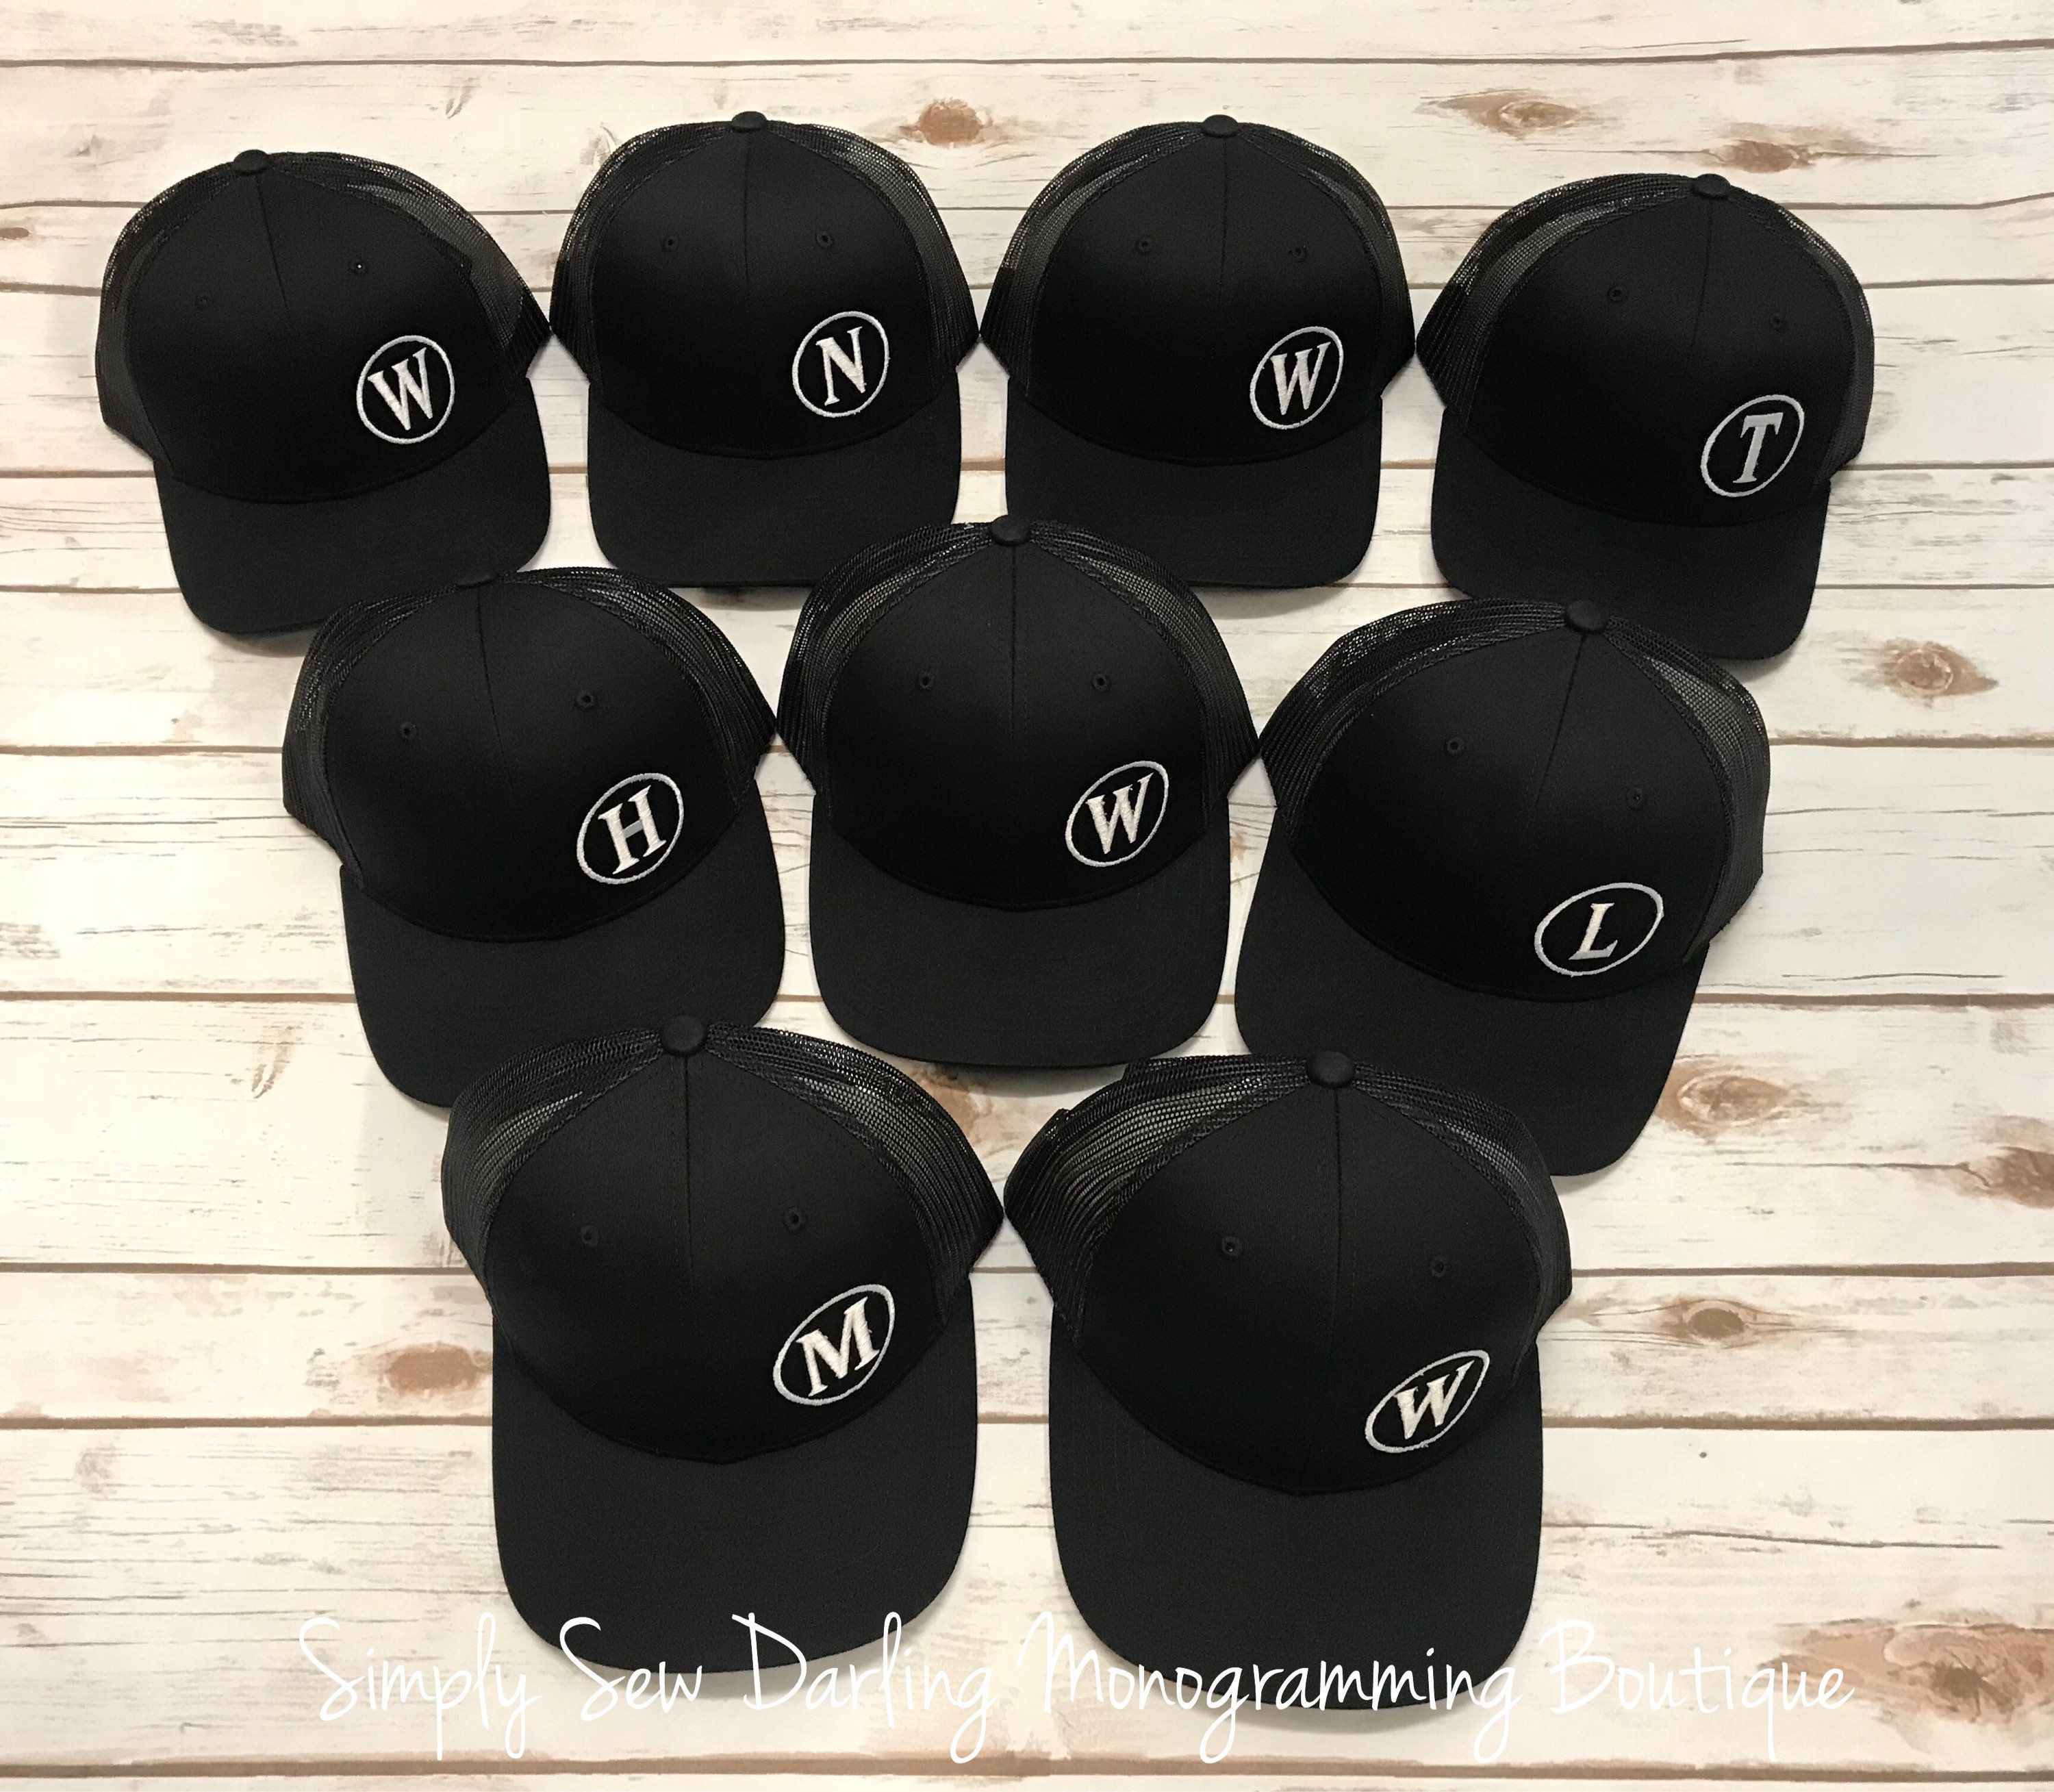 410260d53 Personalized Embroidered Monogrammed Off-Set Groom Groomsmen Trucker ...